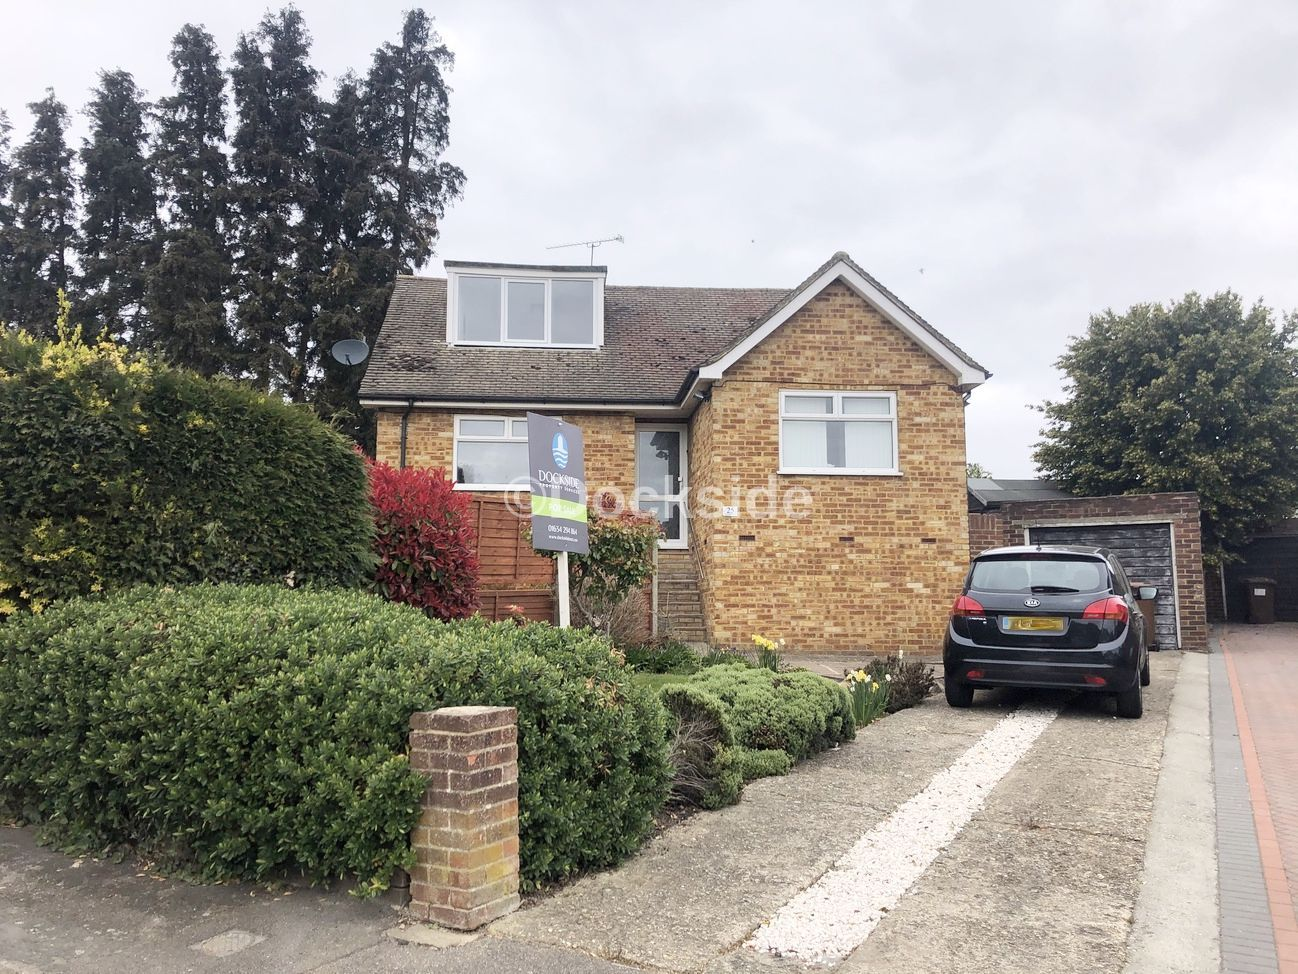 3 bed house for sale in Sharfleet Drive  - Property Image 12